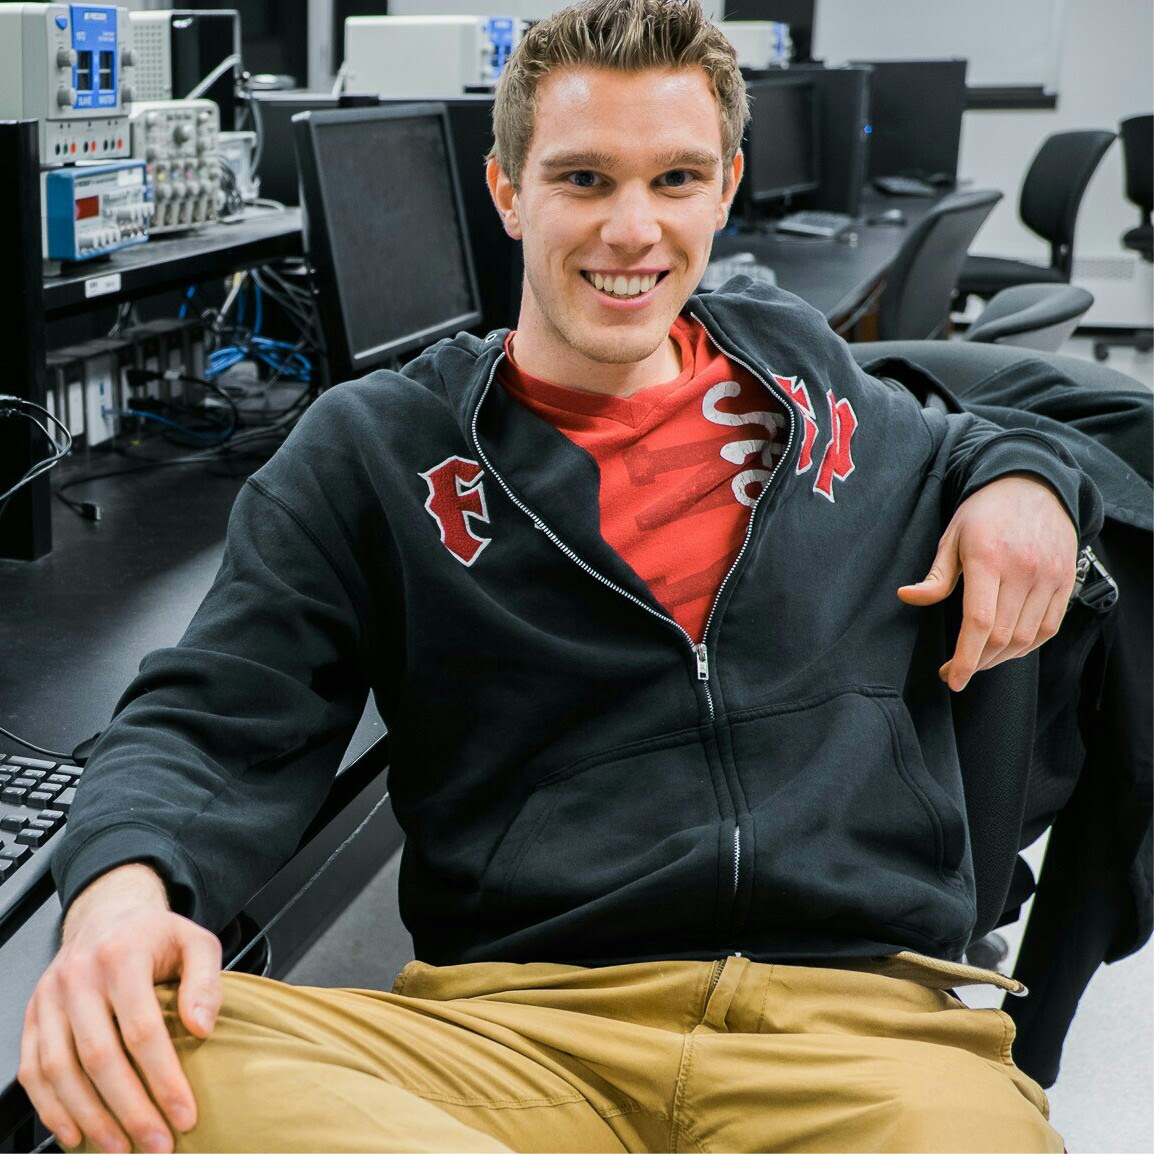 Paul - Computer Engineering Student